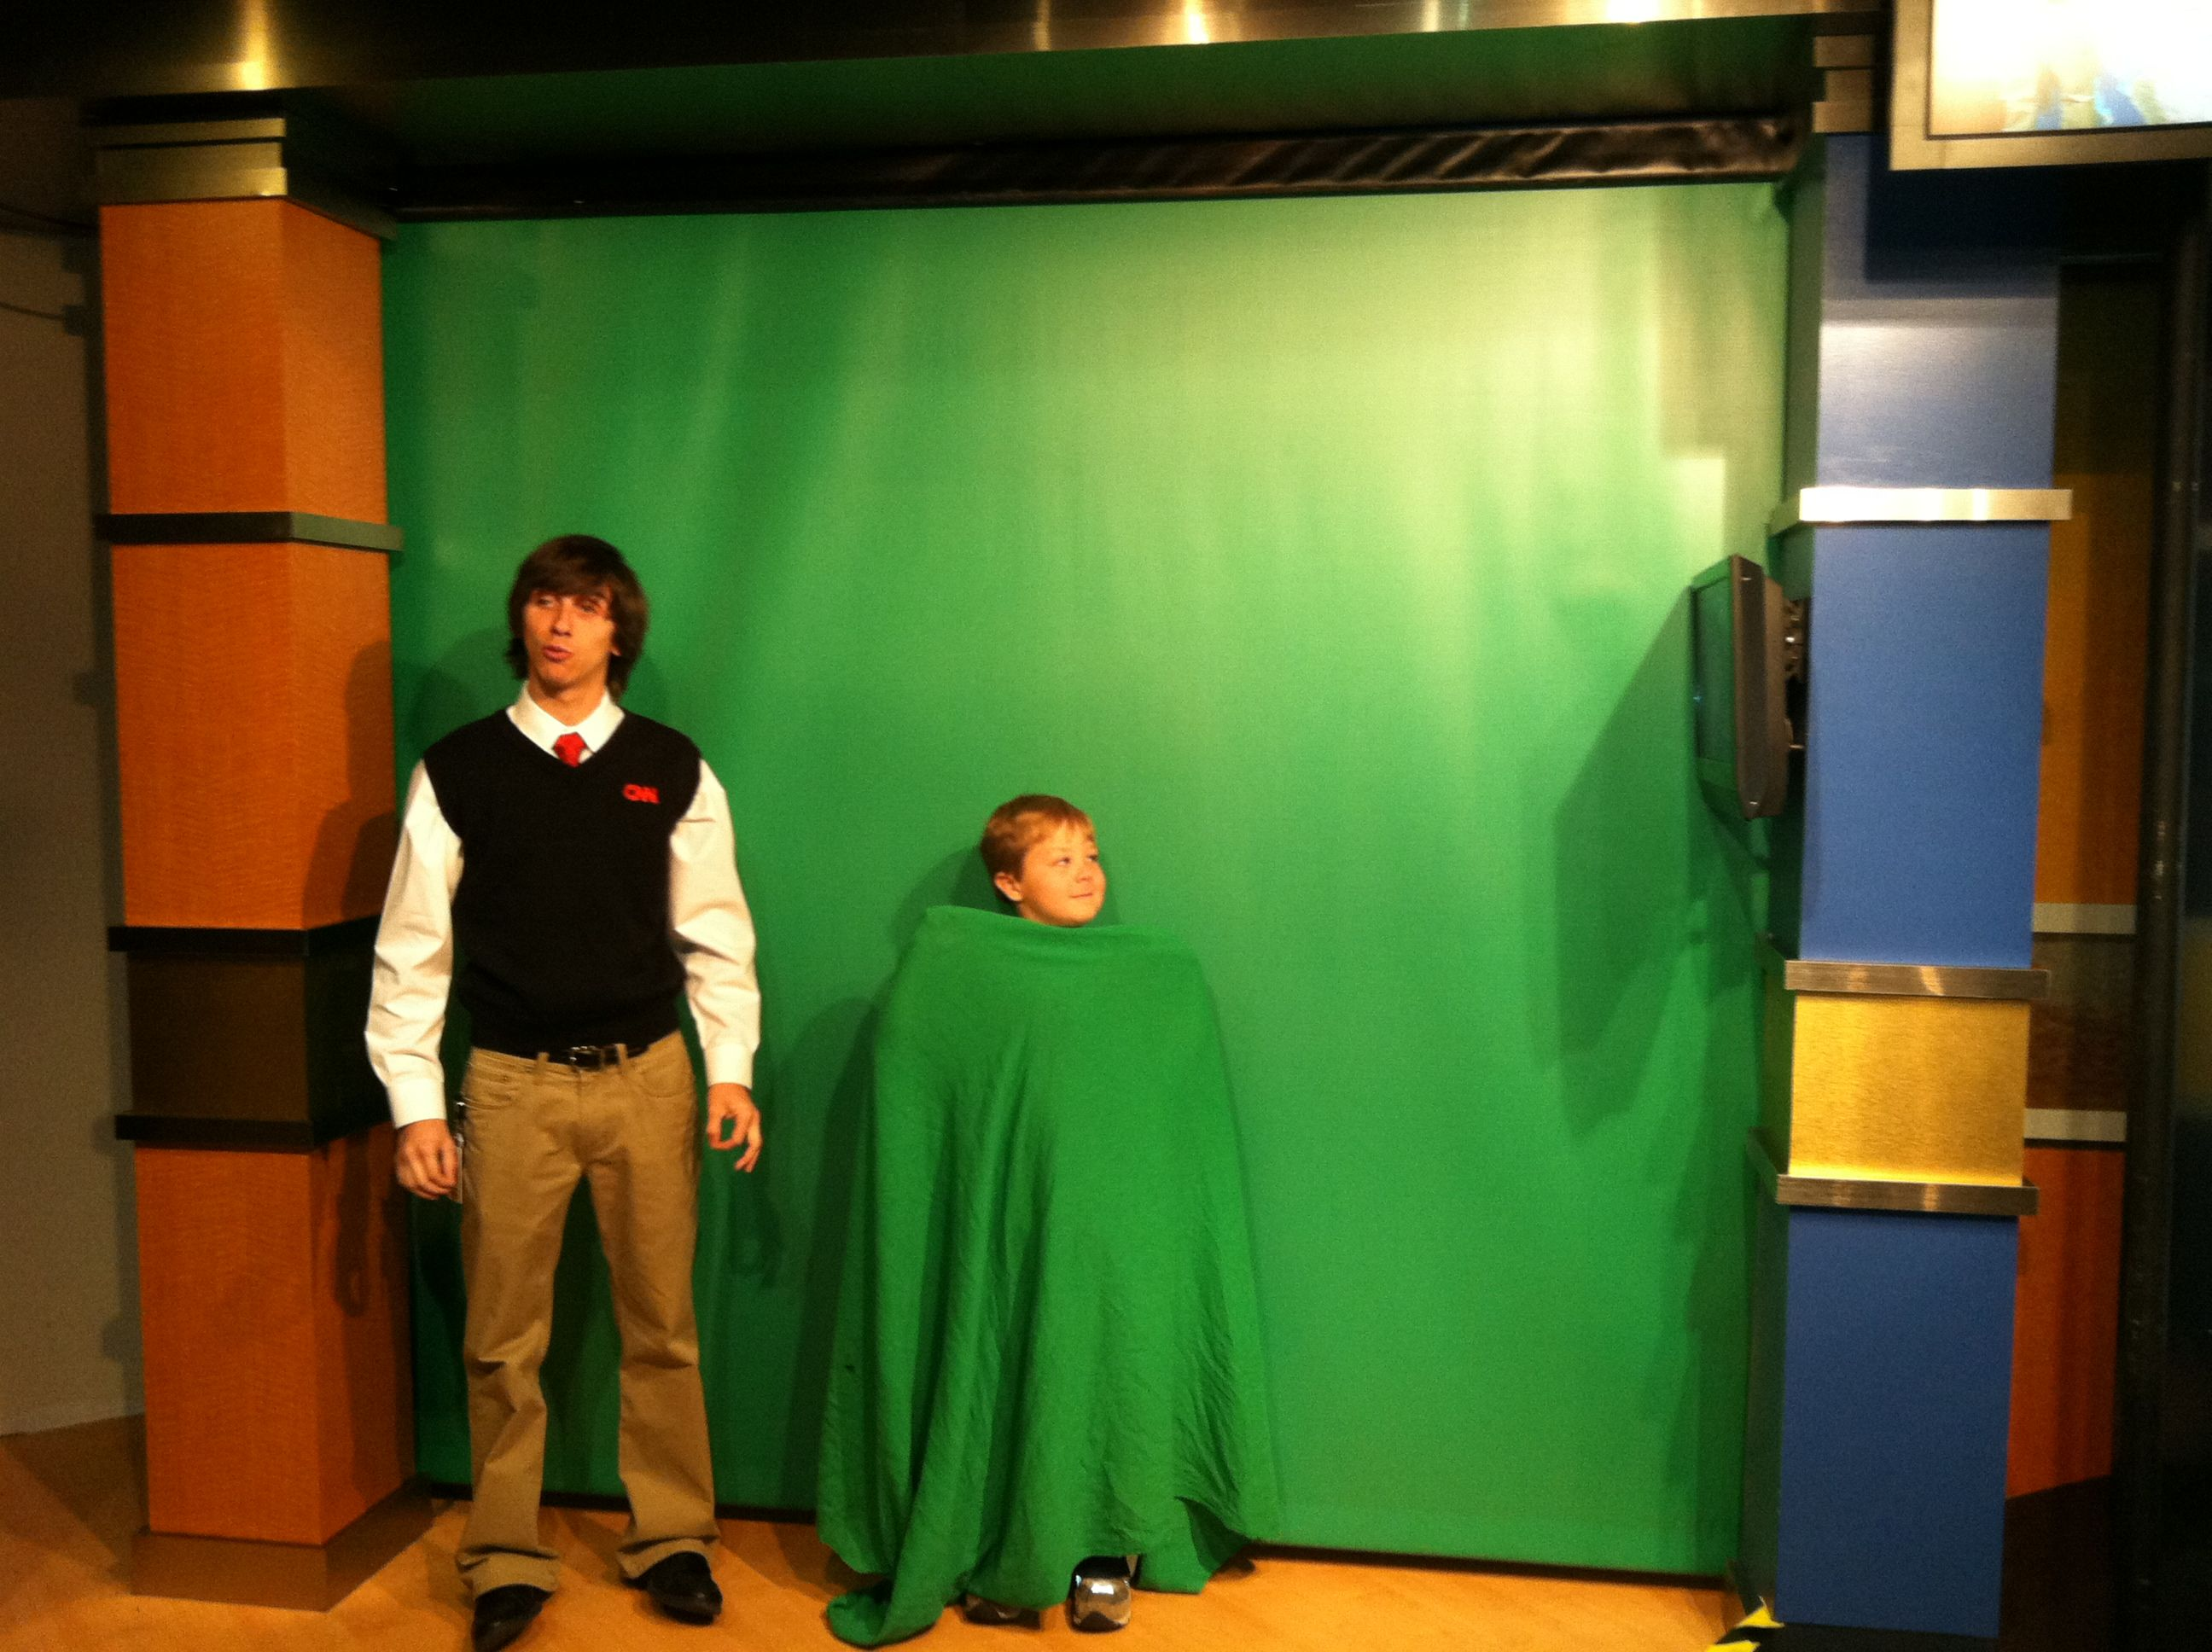 Cnn Studio Tour Kids Can Channel Harry Potter And Disappear Behind A Green Screen Field Trip Trip Family Travel Blog